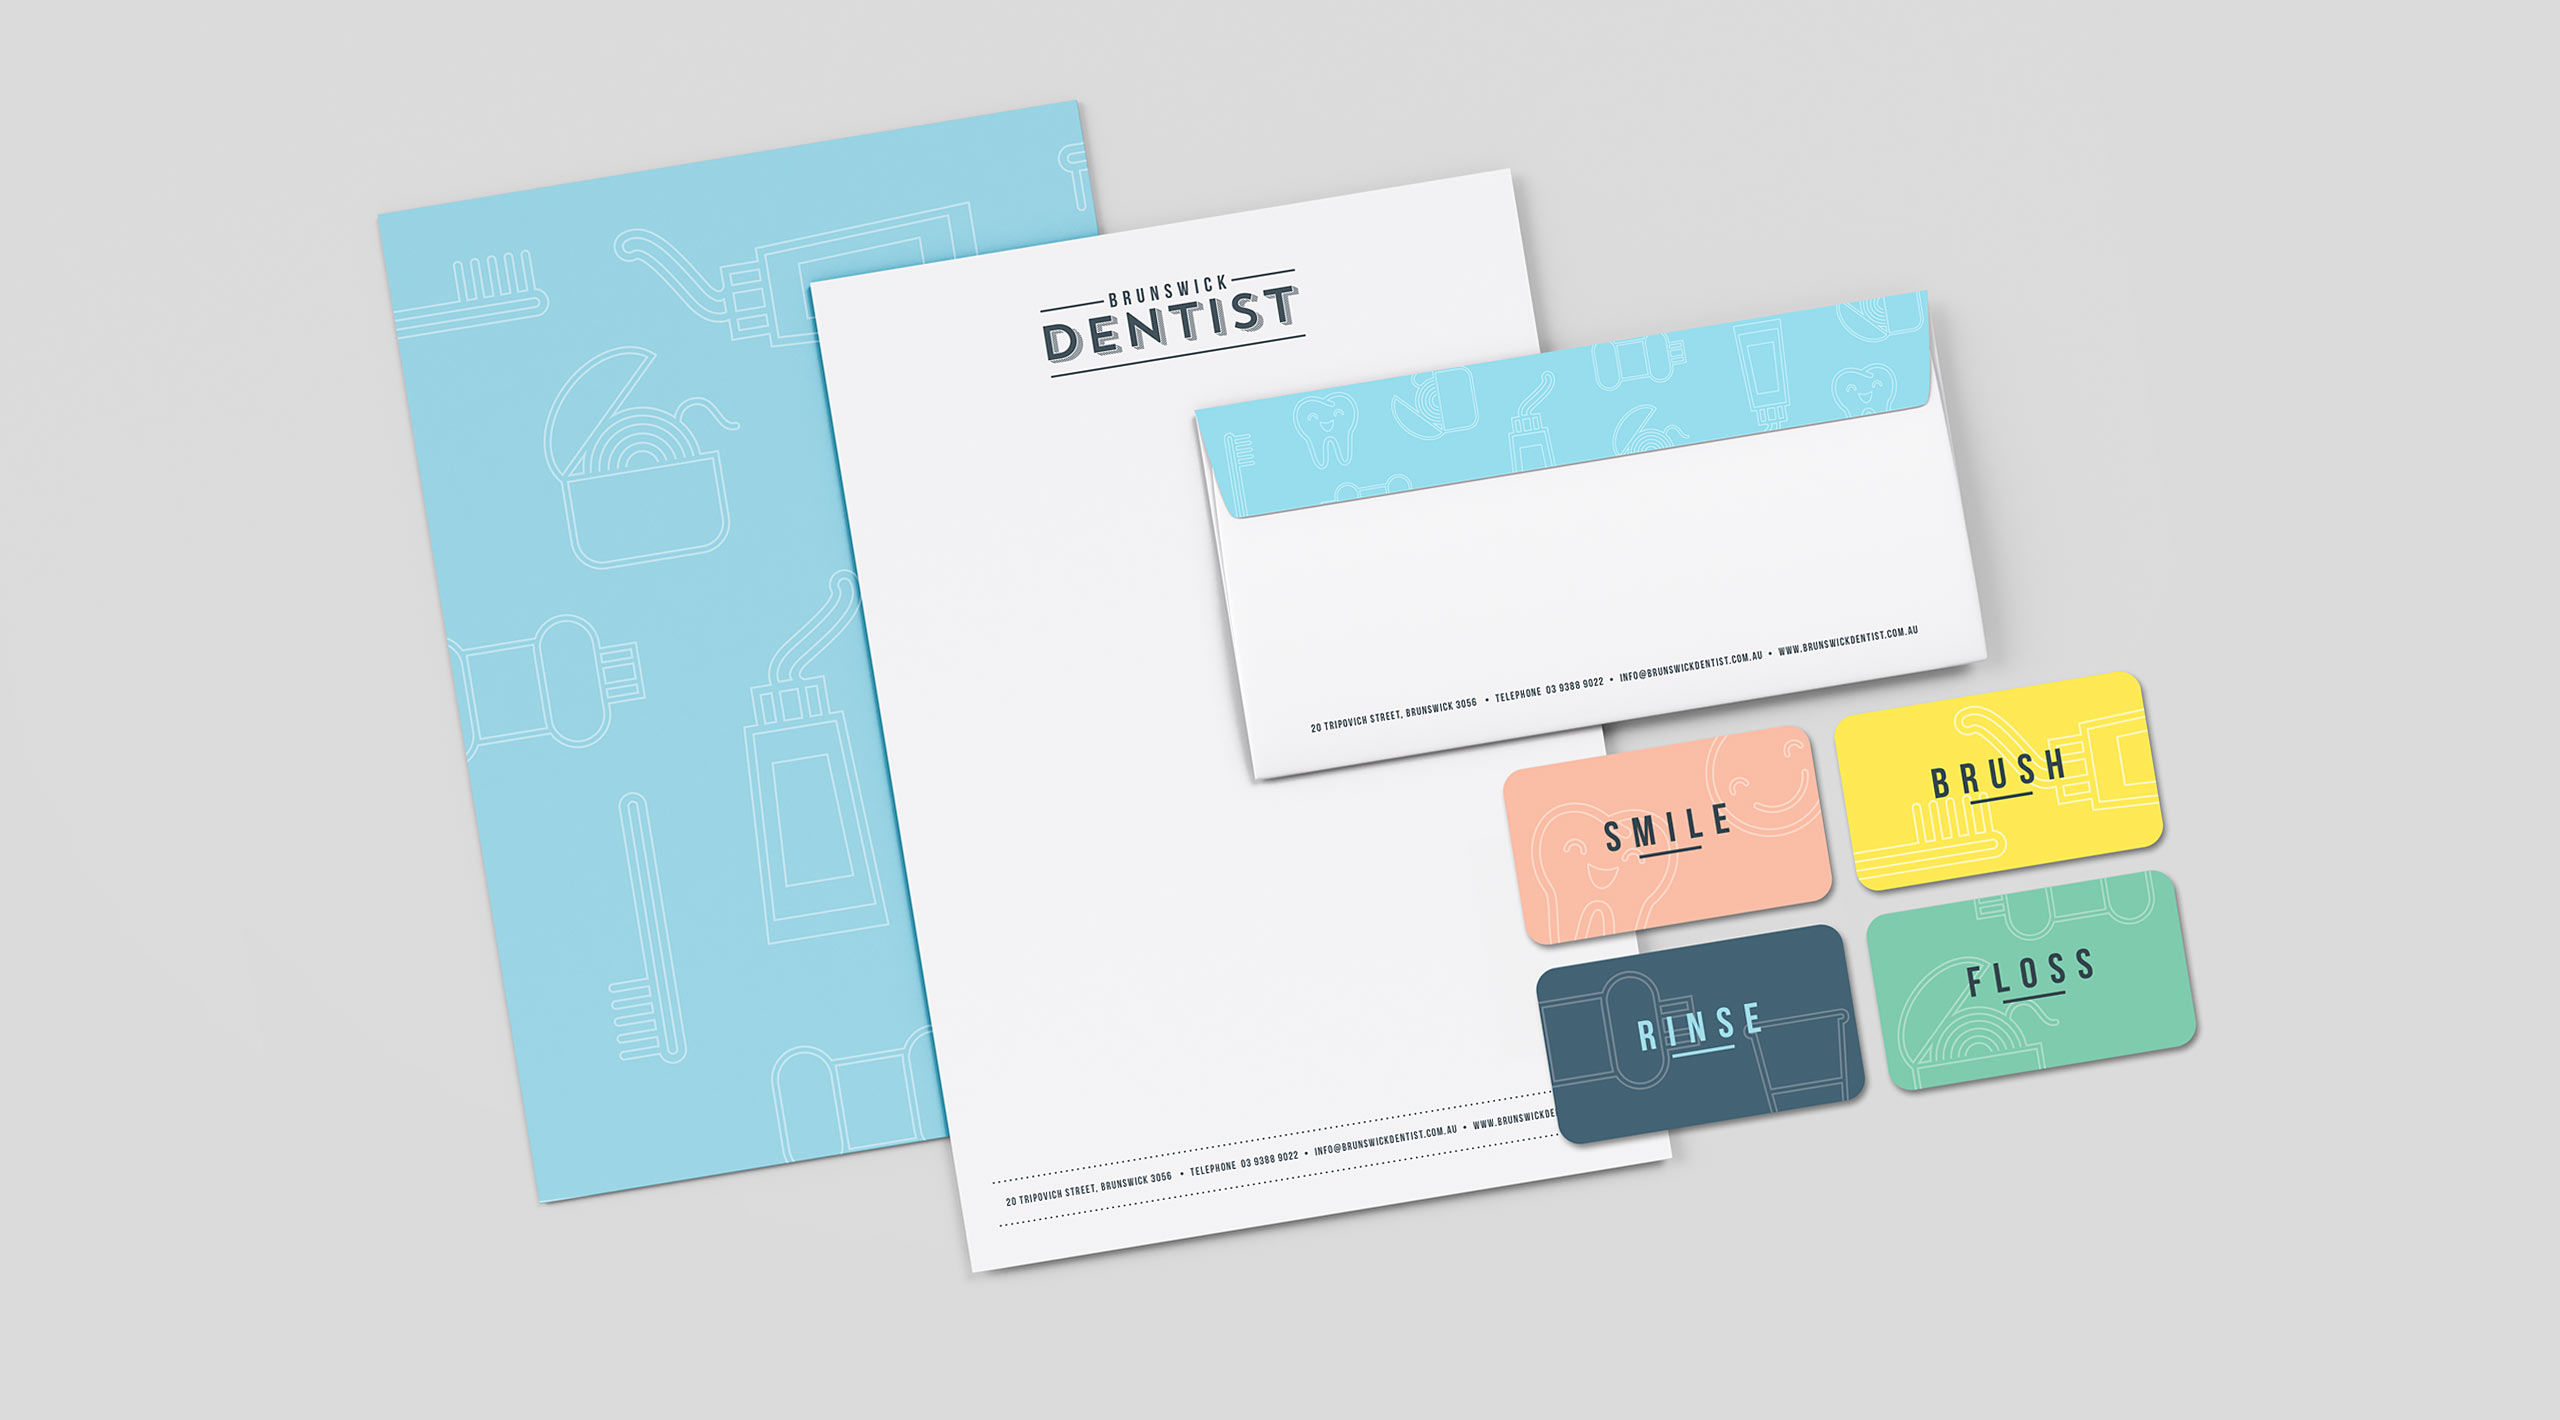 brunswick dentist branding stationery